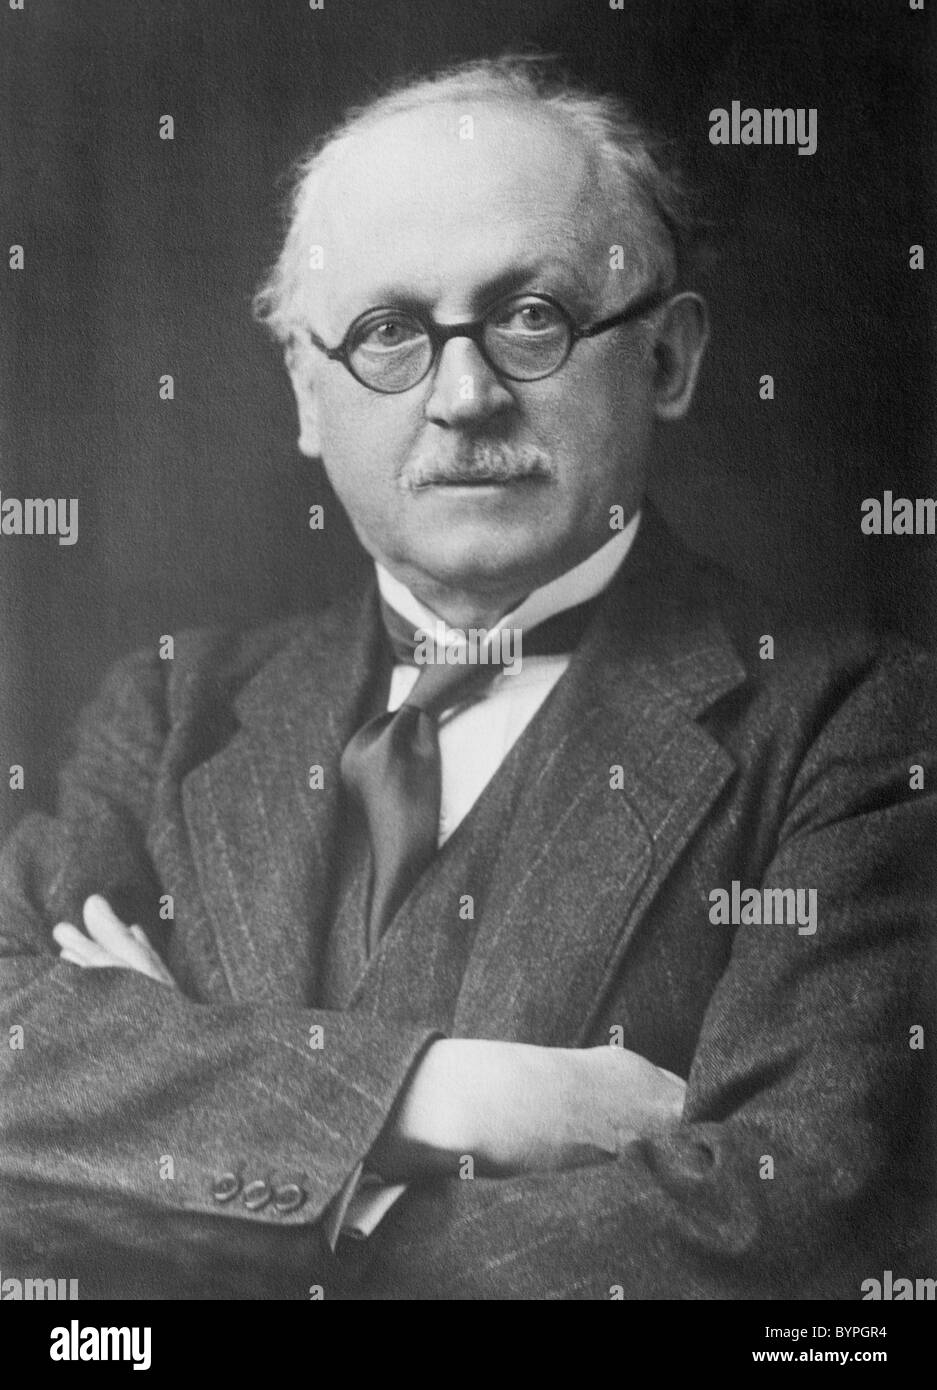 Portrait photo circa 1920s of English architect Sir Edwin Landseer Lutyens (1869 - 1944). - Stock Image